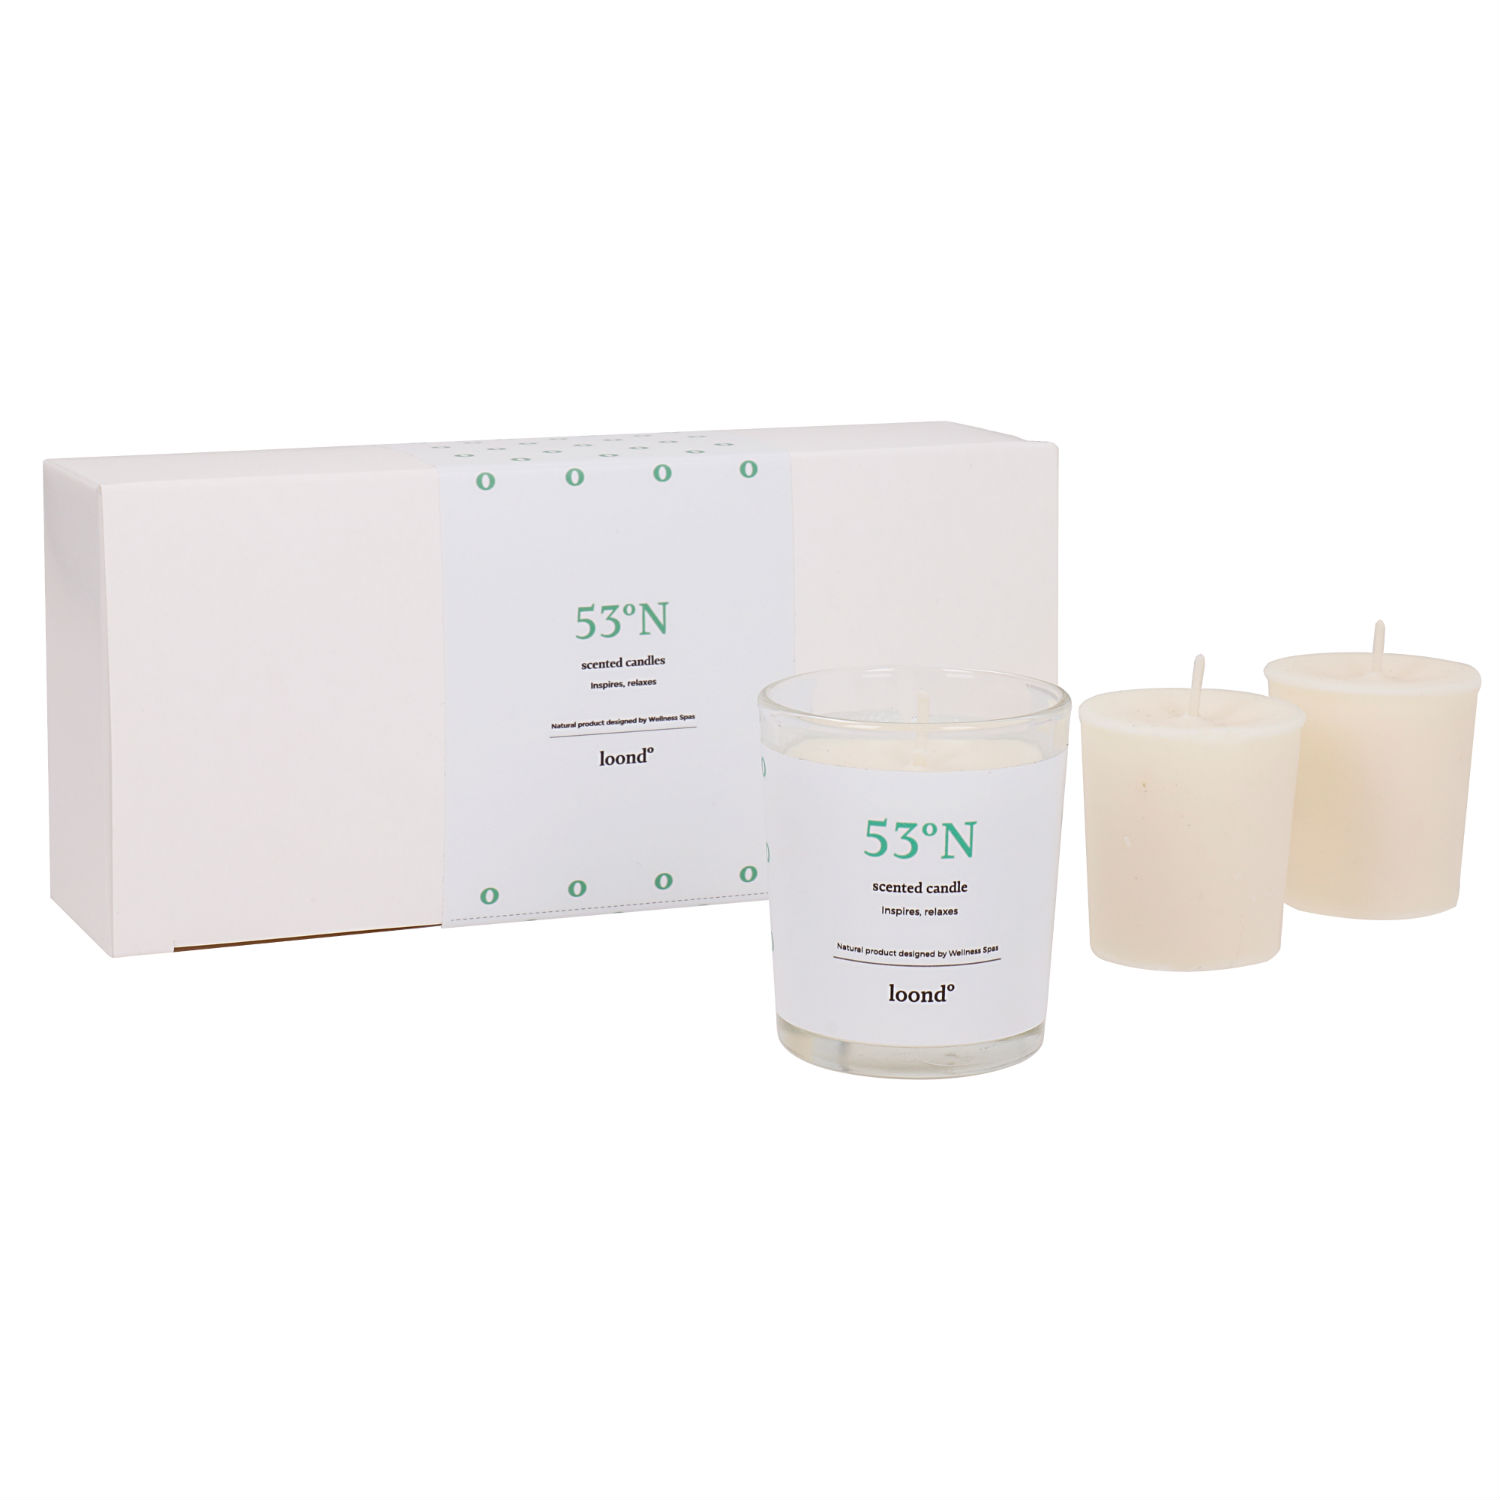 loond53°N scented candles